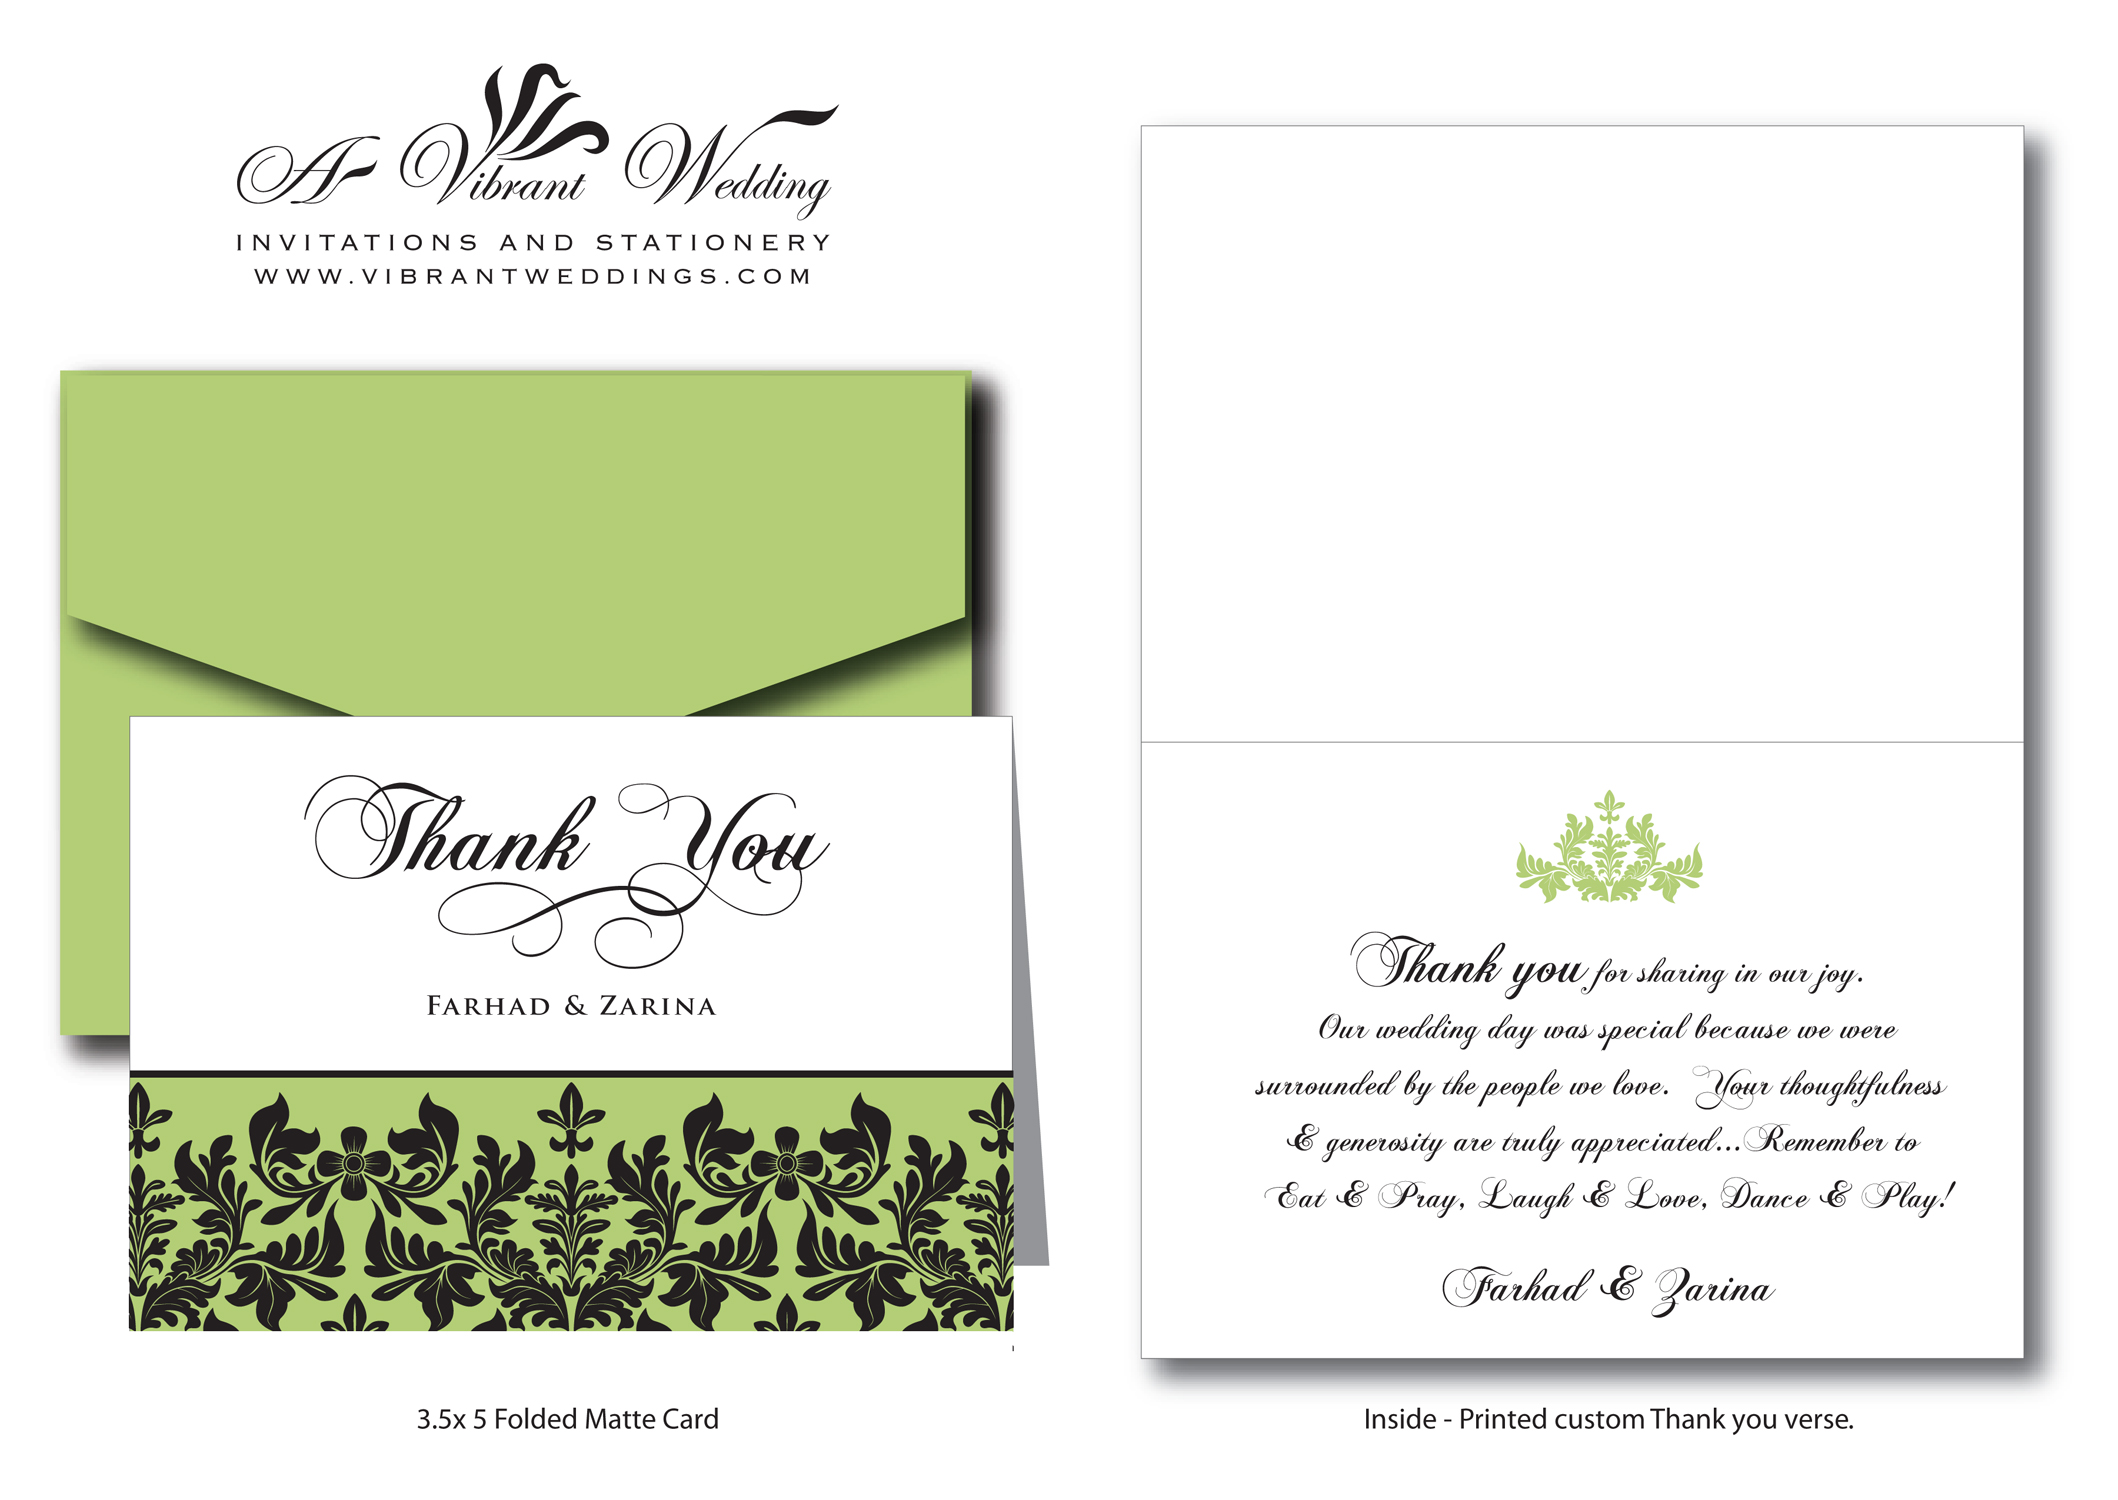 Wedding Invite Money Poem is amazing invitations layout